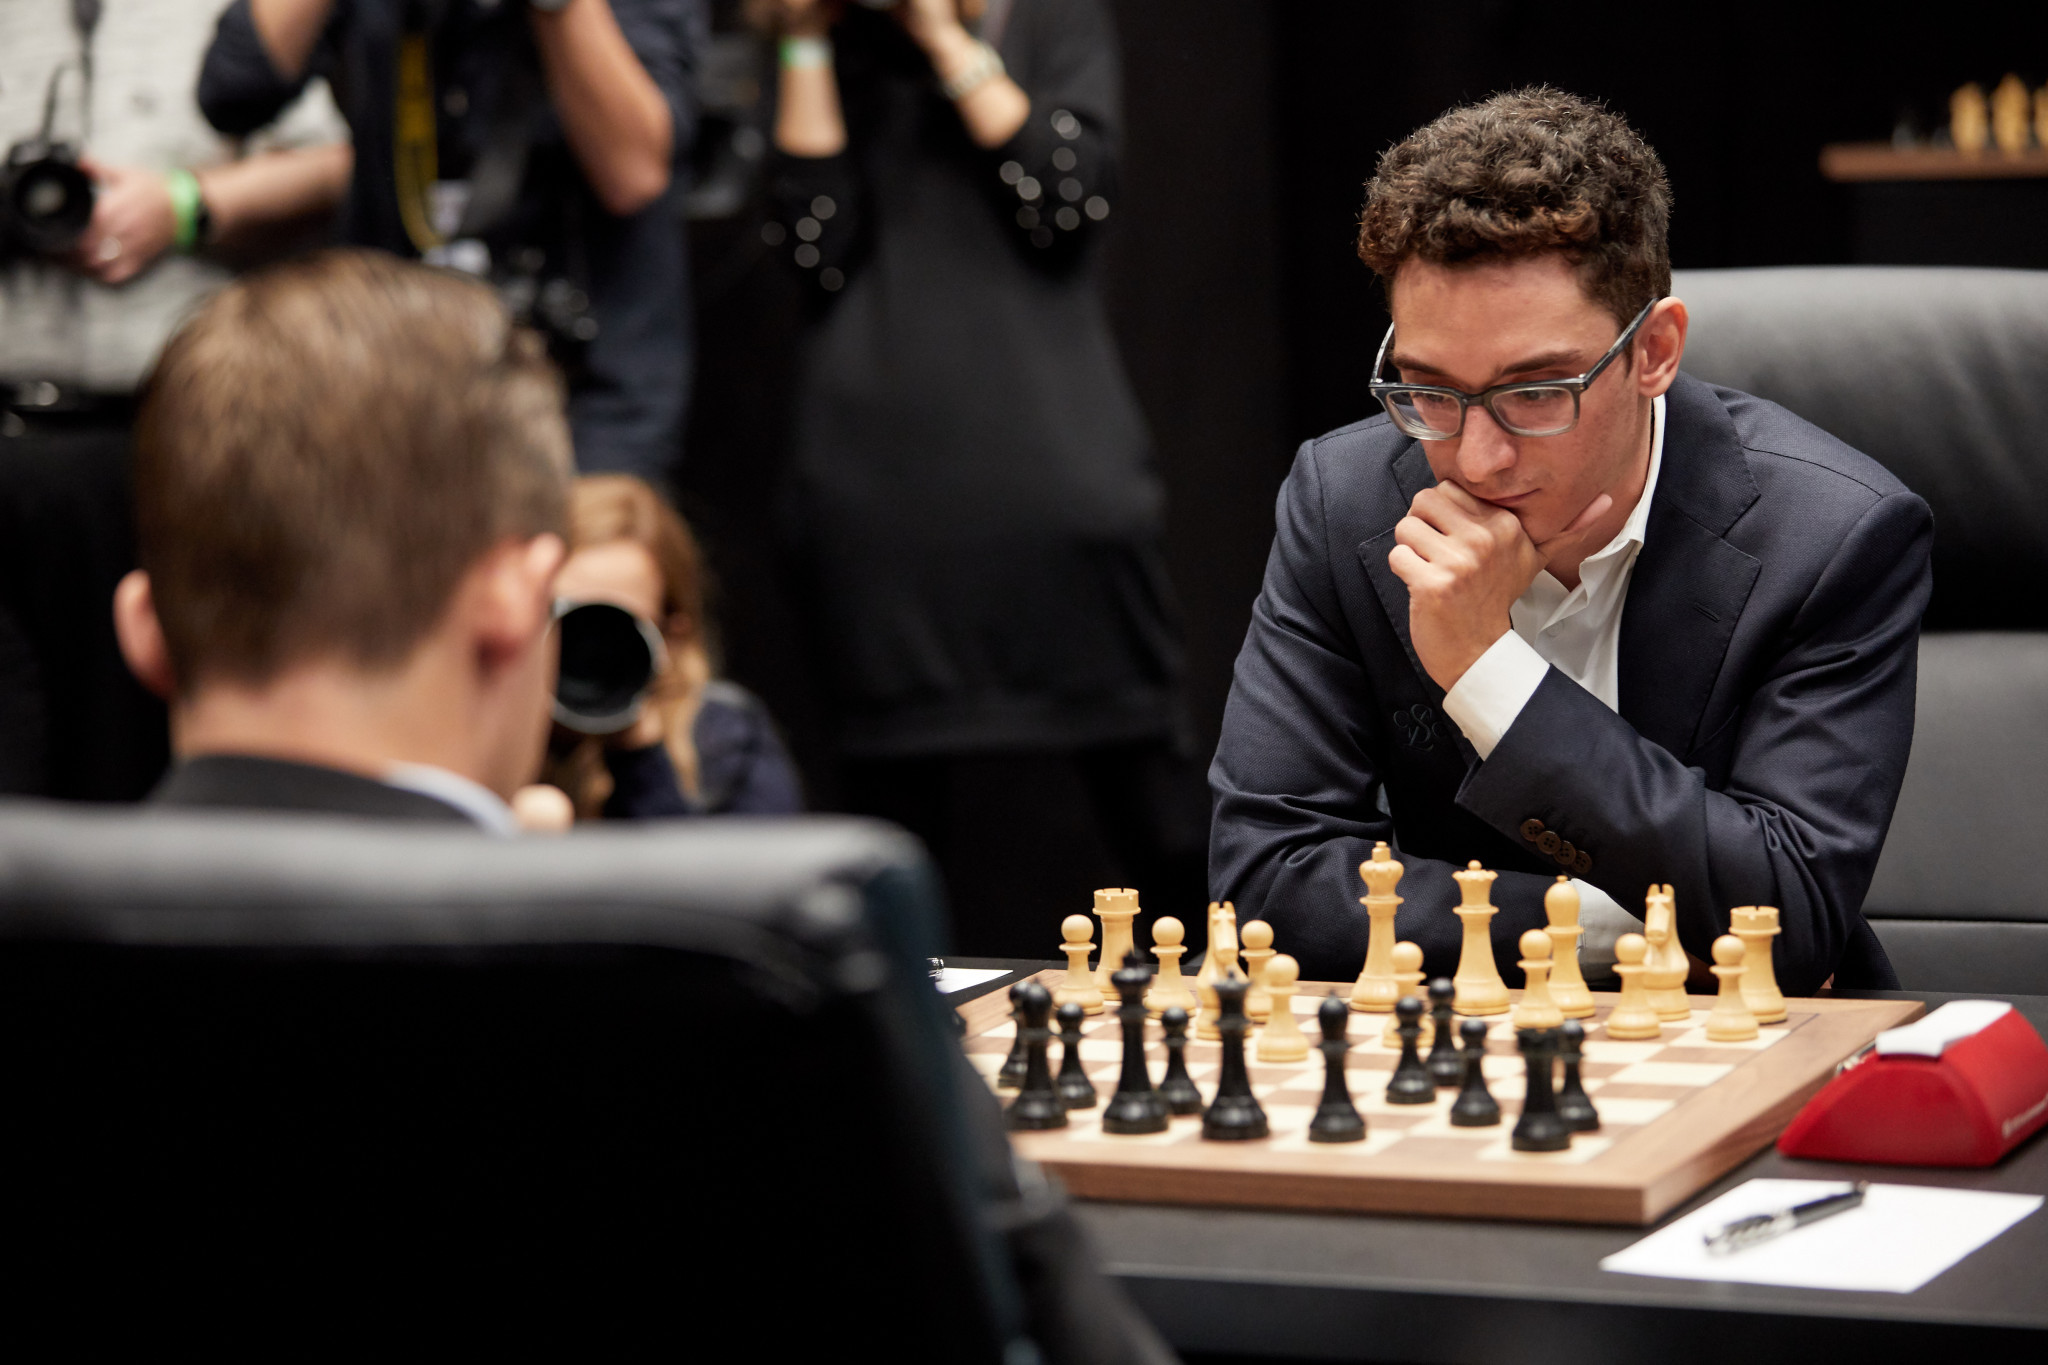 Magnus Carlsen and Fabiano Caruana drew their first match in the World Chess Championship ©Getty Images